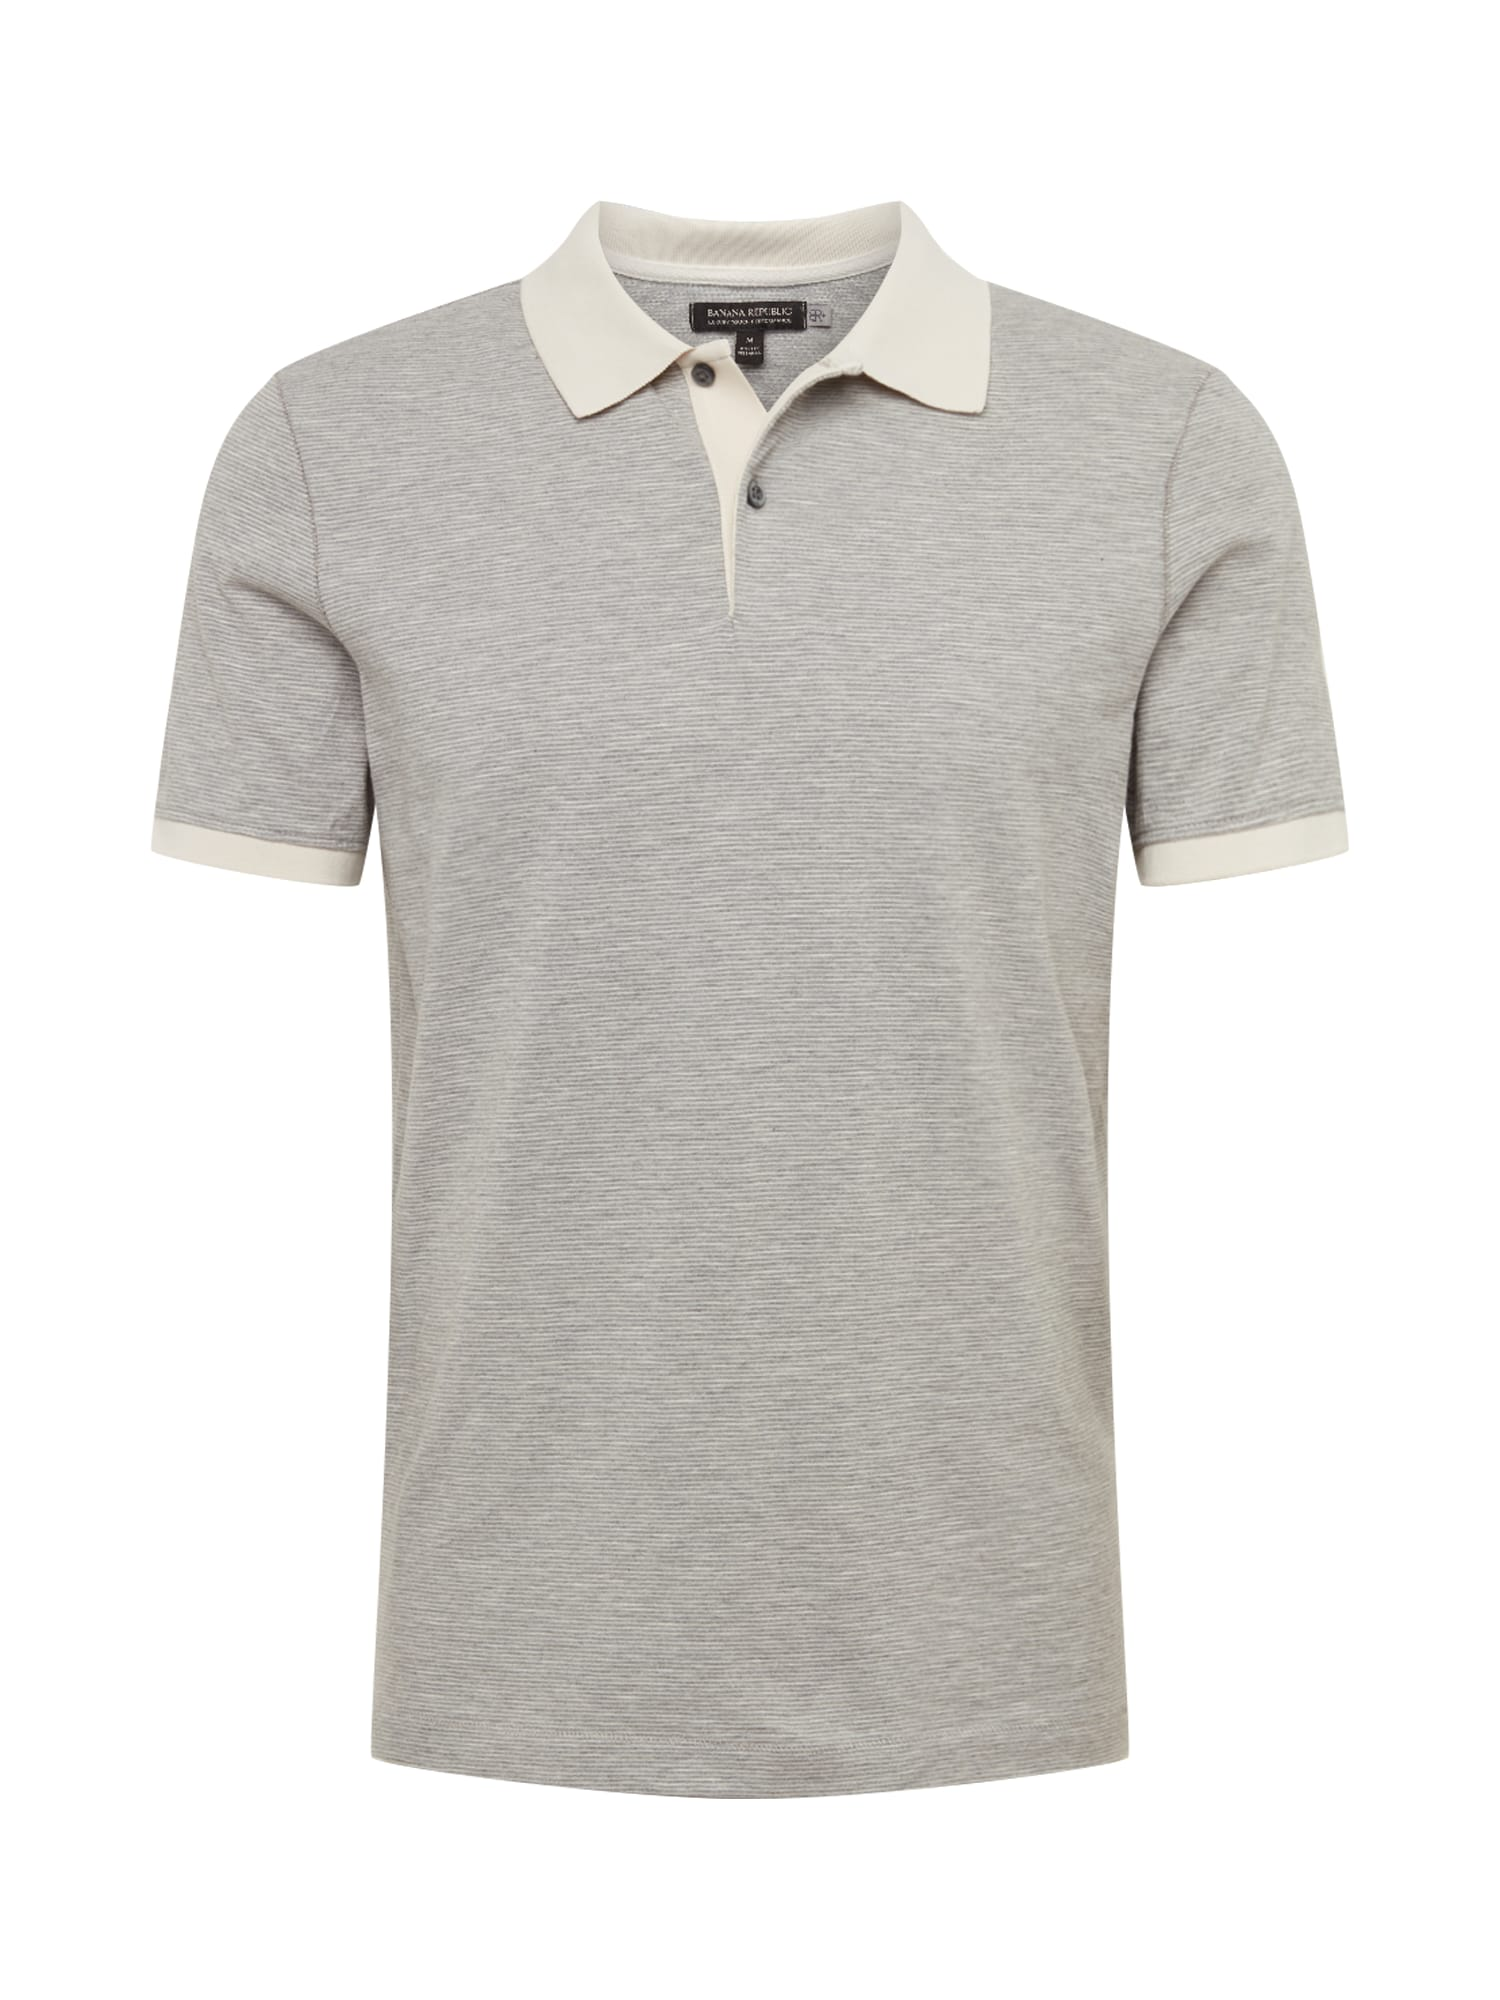 Tričko PERF LUX SZ NEUTRAL FEEDER STRIPE POLO světle šedá Banana Republic